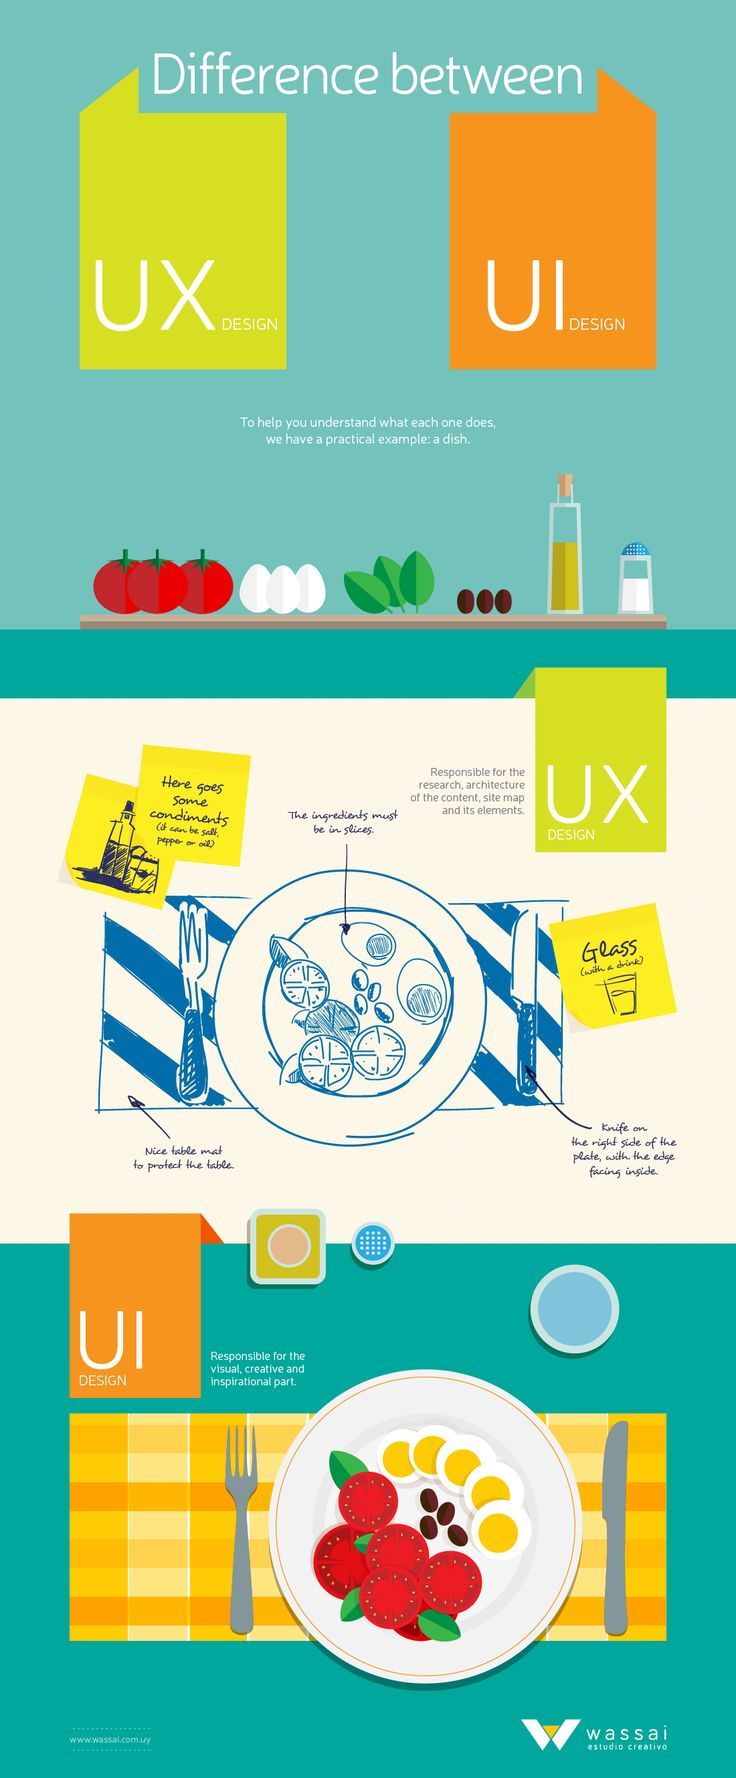 UX vs UI design difference-infographie-Blographisme